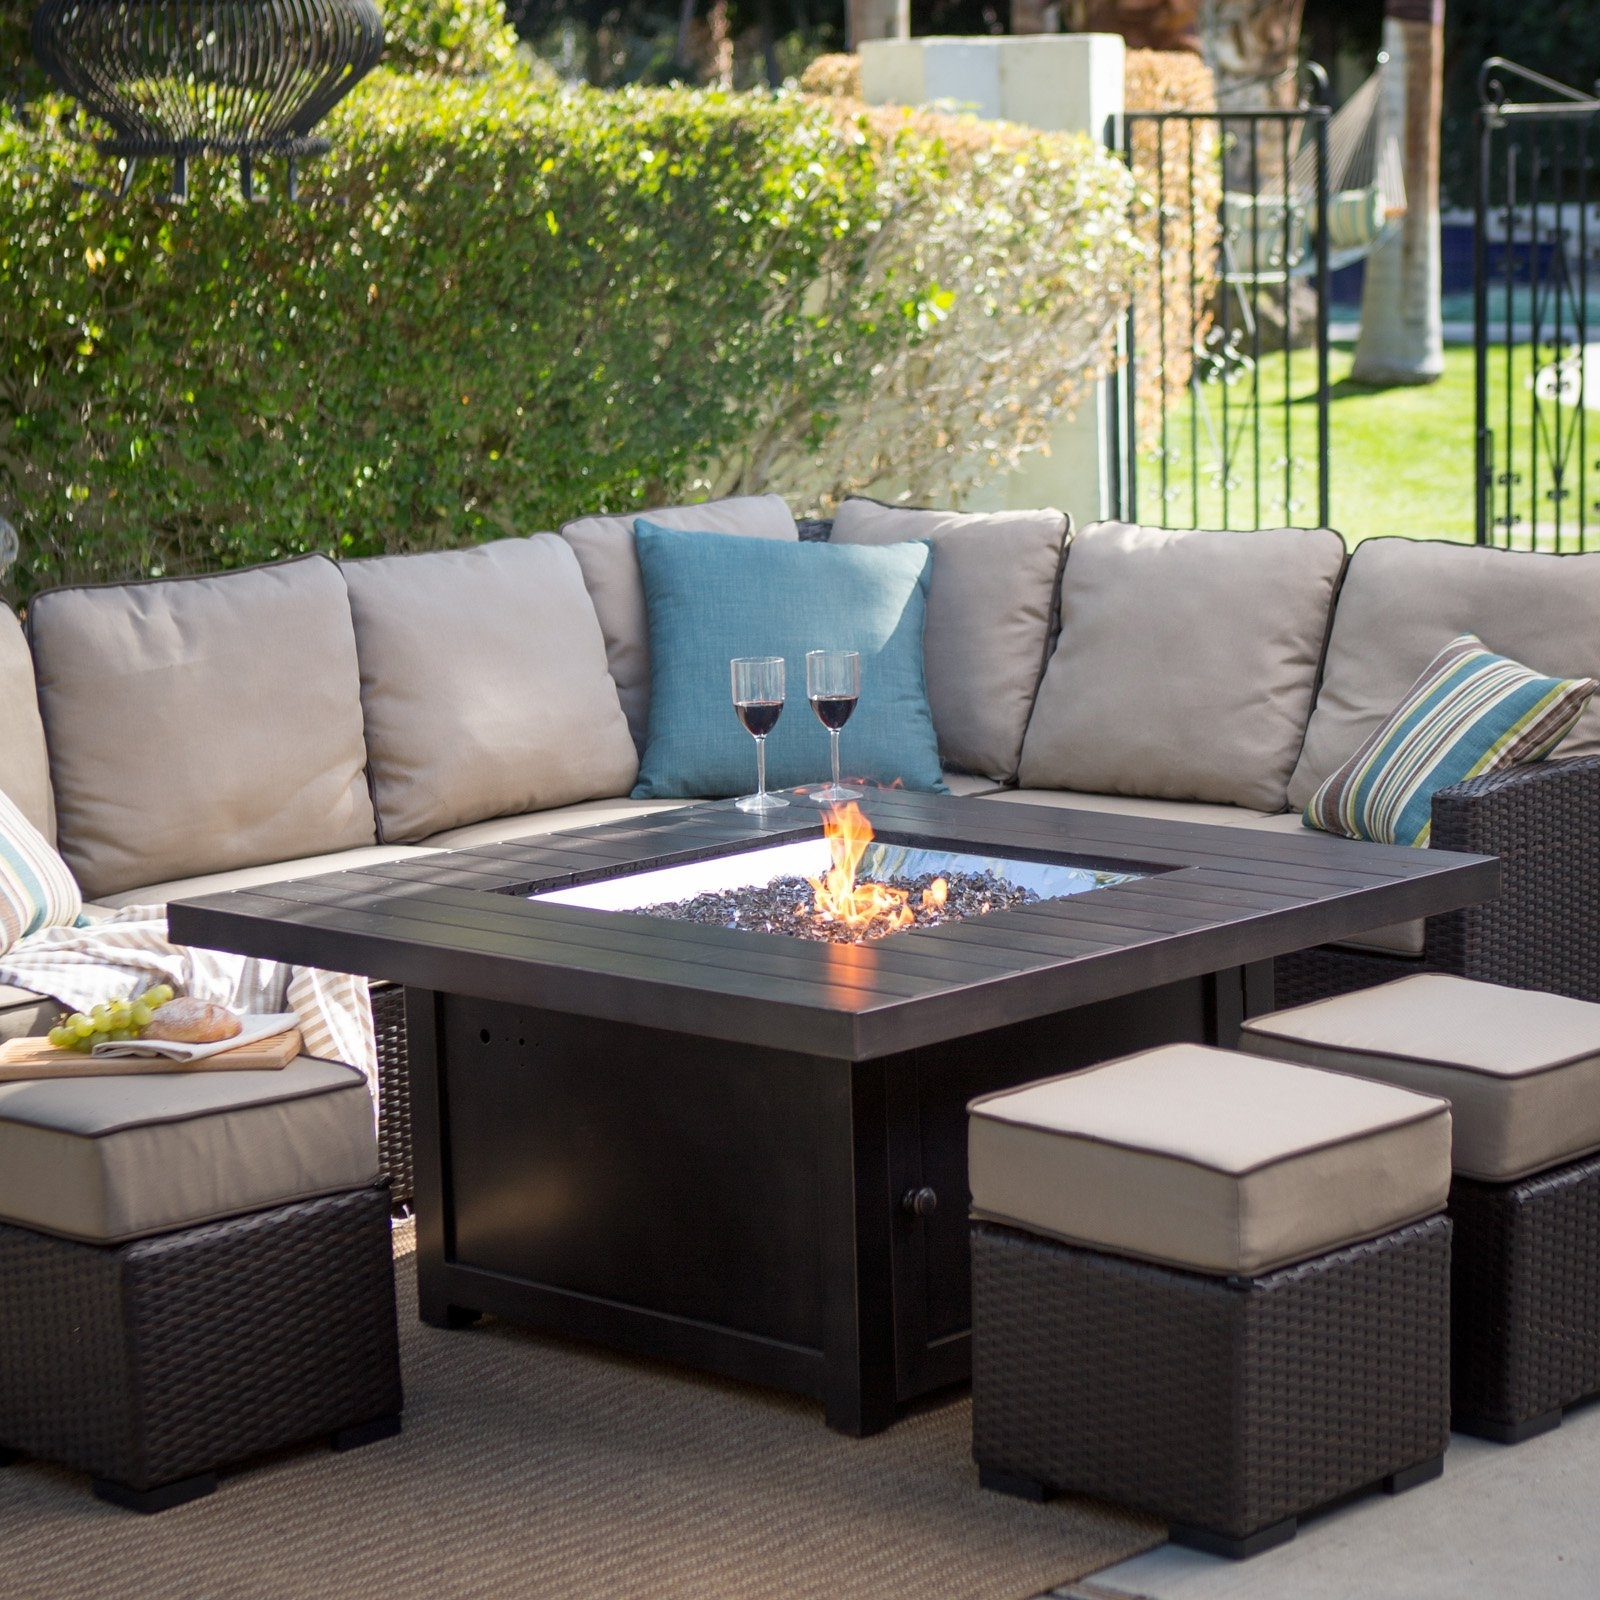 Patio Conversation Sets With Fire Table Within Newest Furniture: High Quality Patio Furniture Columbus Ohio And Fire Pit (View 17 of 20)